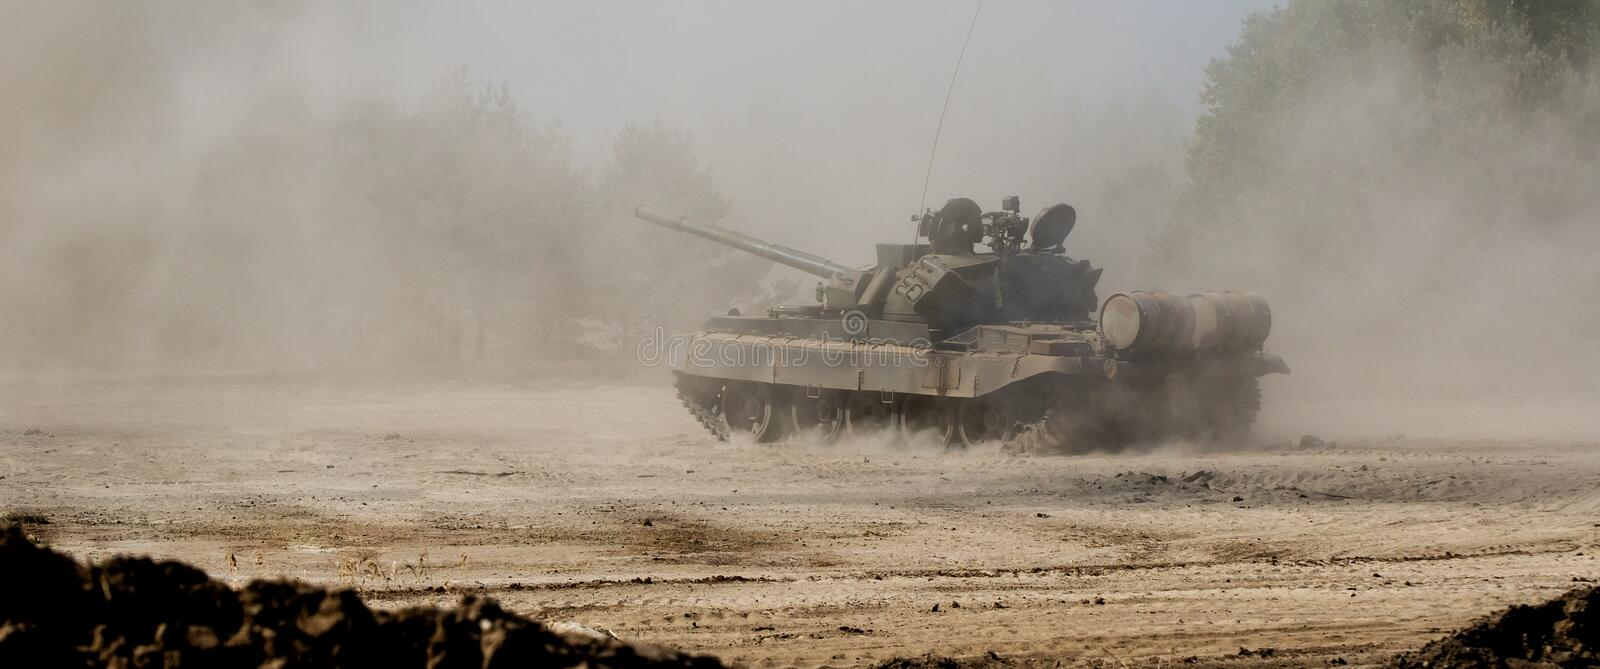 TANK WARSAW PACT. Tank T-55 off-road in the dust stock photography